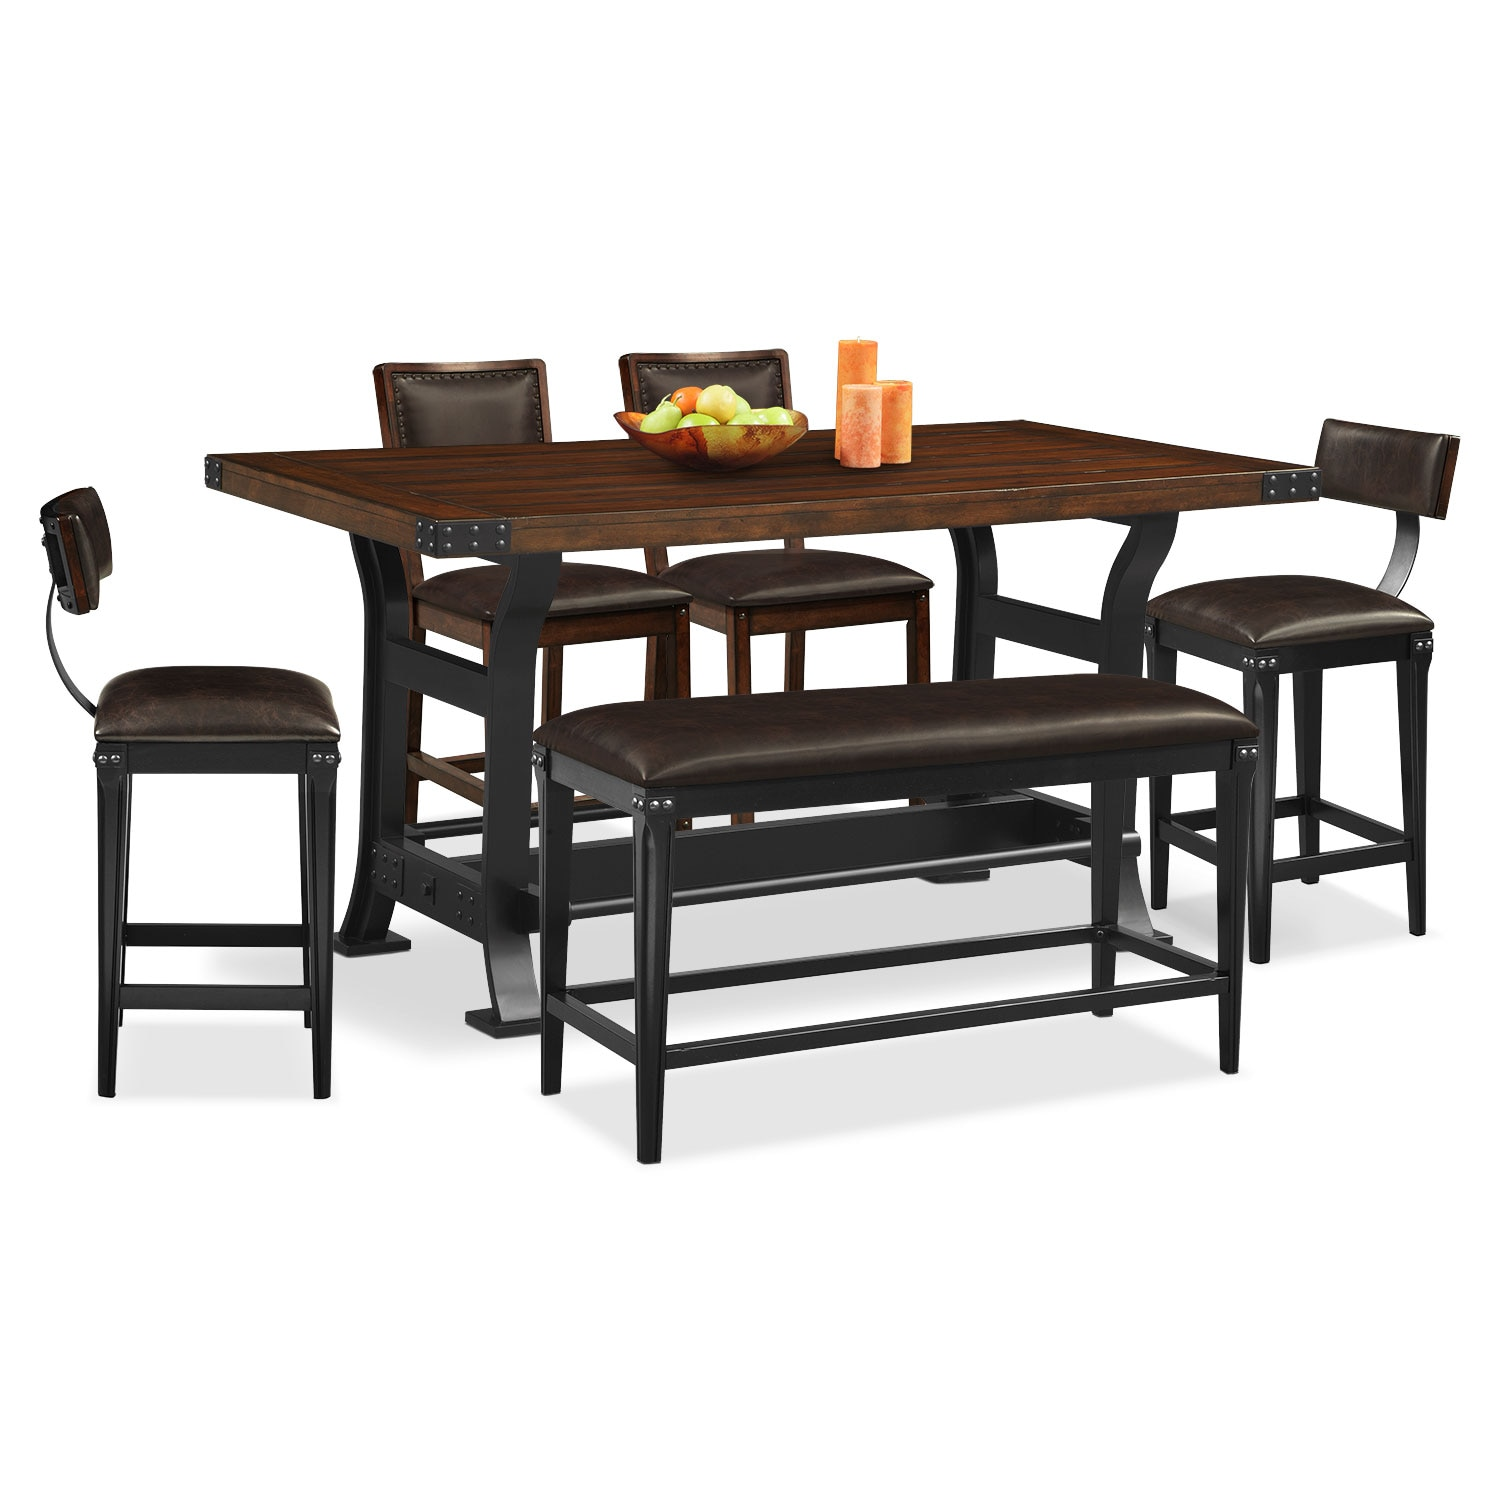 Dining Room Furniture   Newcastle Counter Height Dining Table, 2 Chairs, 2  Stools